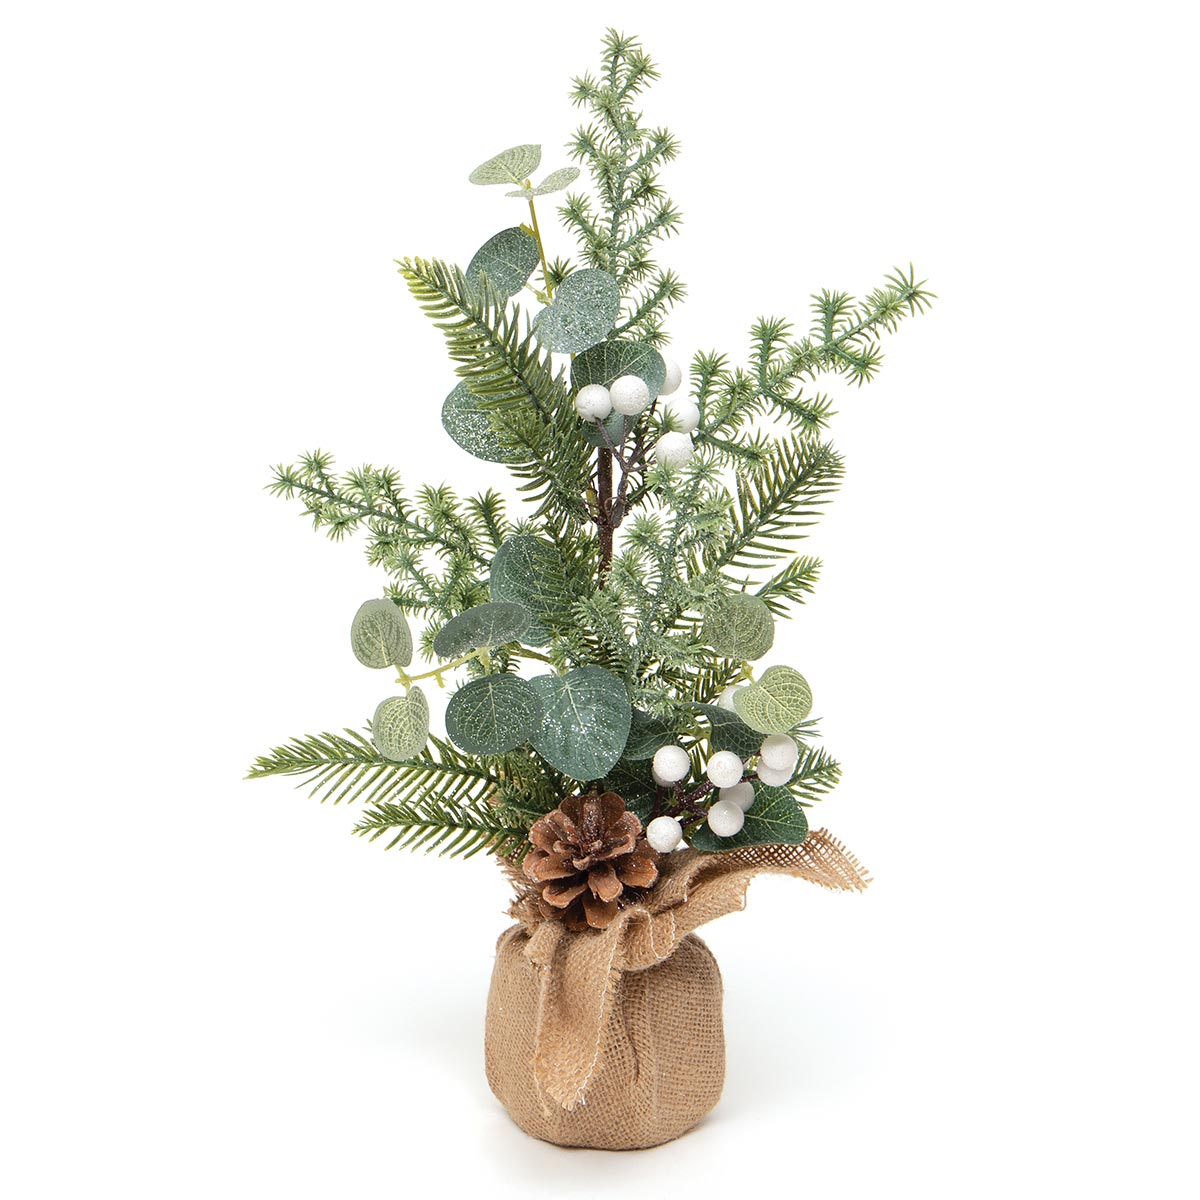 WINTER BERRY MINI TREE IN BURLAP BASE WITH WHITE BERRIES